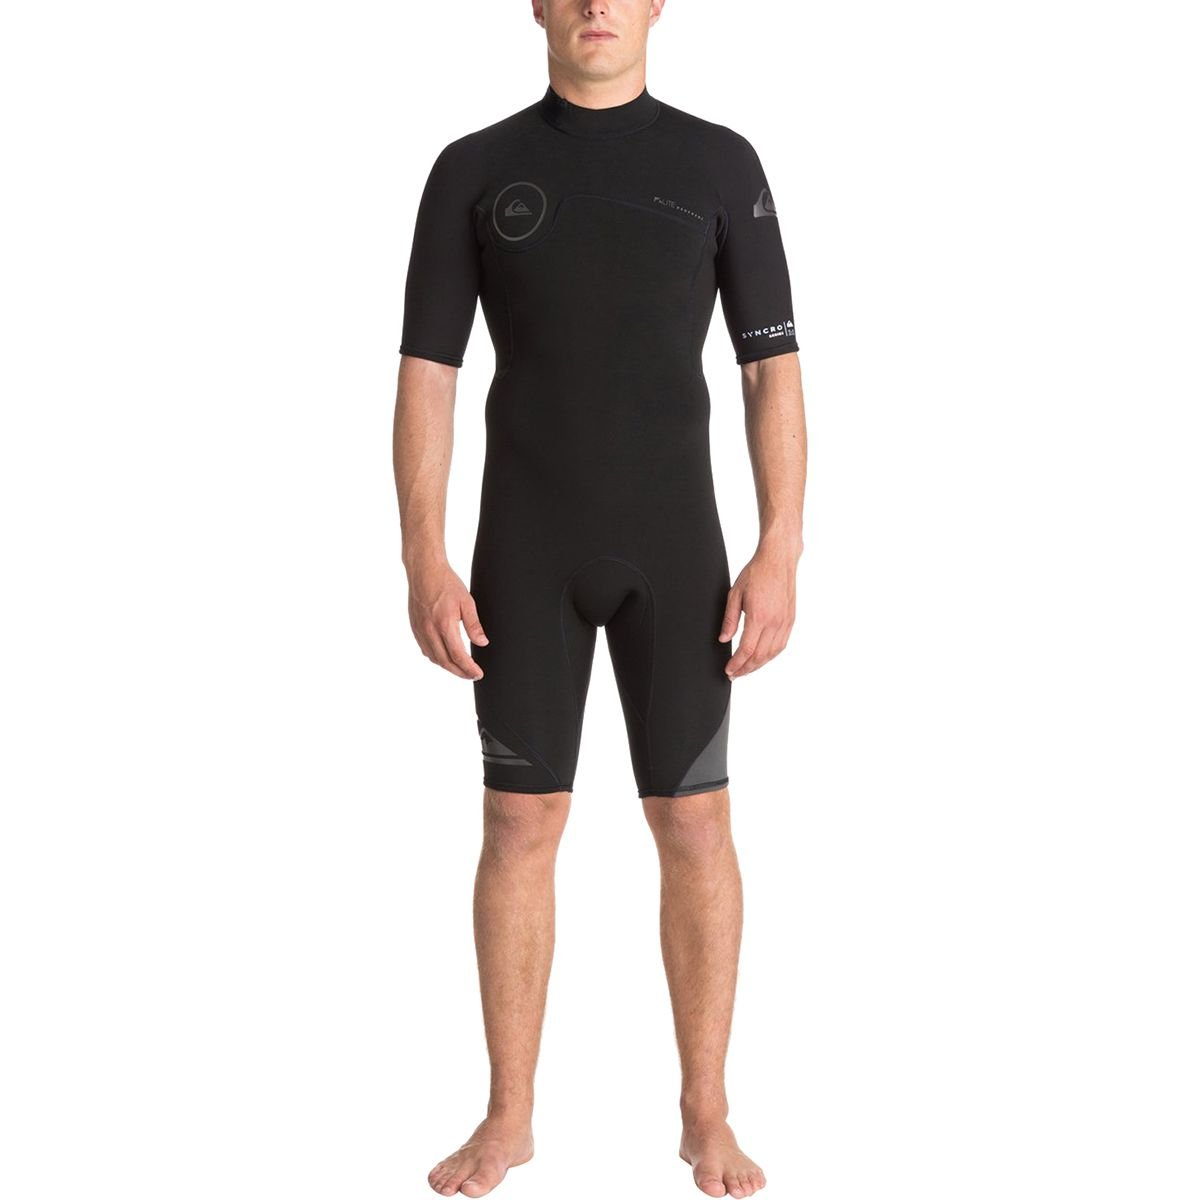 Quiksilver 2mm Syncro Back Zip FLT Men's Shorty Wetsuits - Black/Black/Jet Black/Medium by Quiksilver